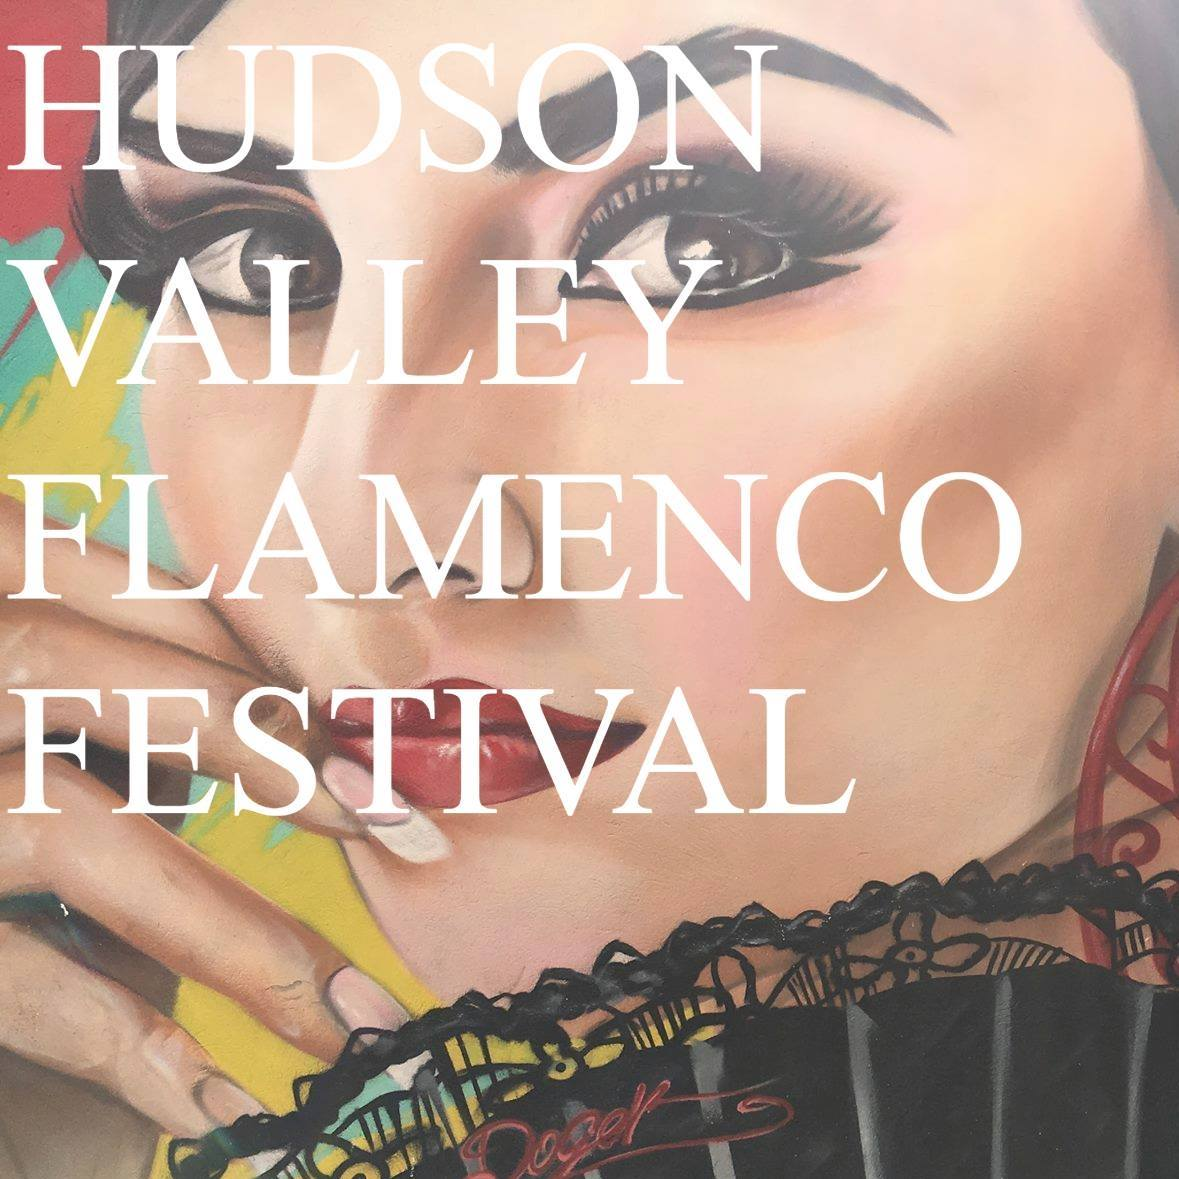 Hudson Valley Flamenco Festival